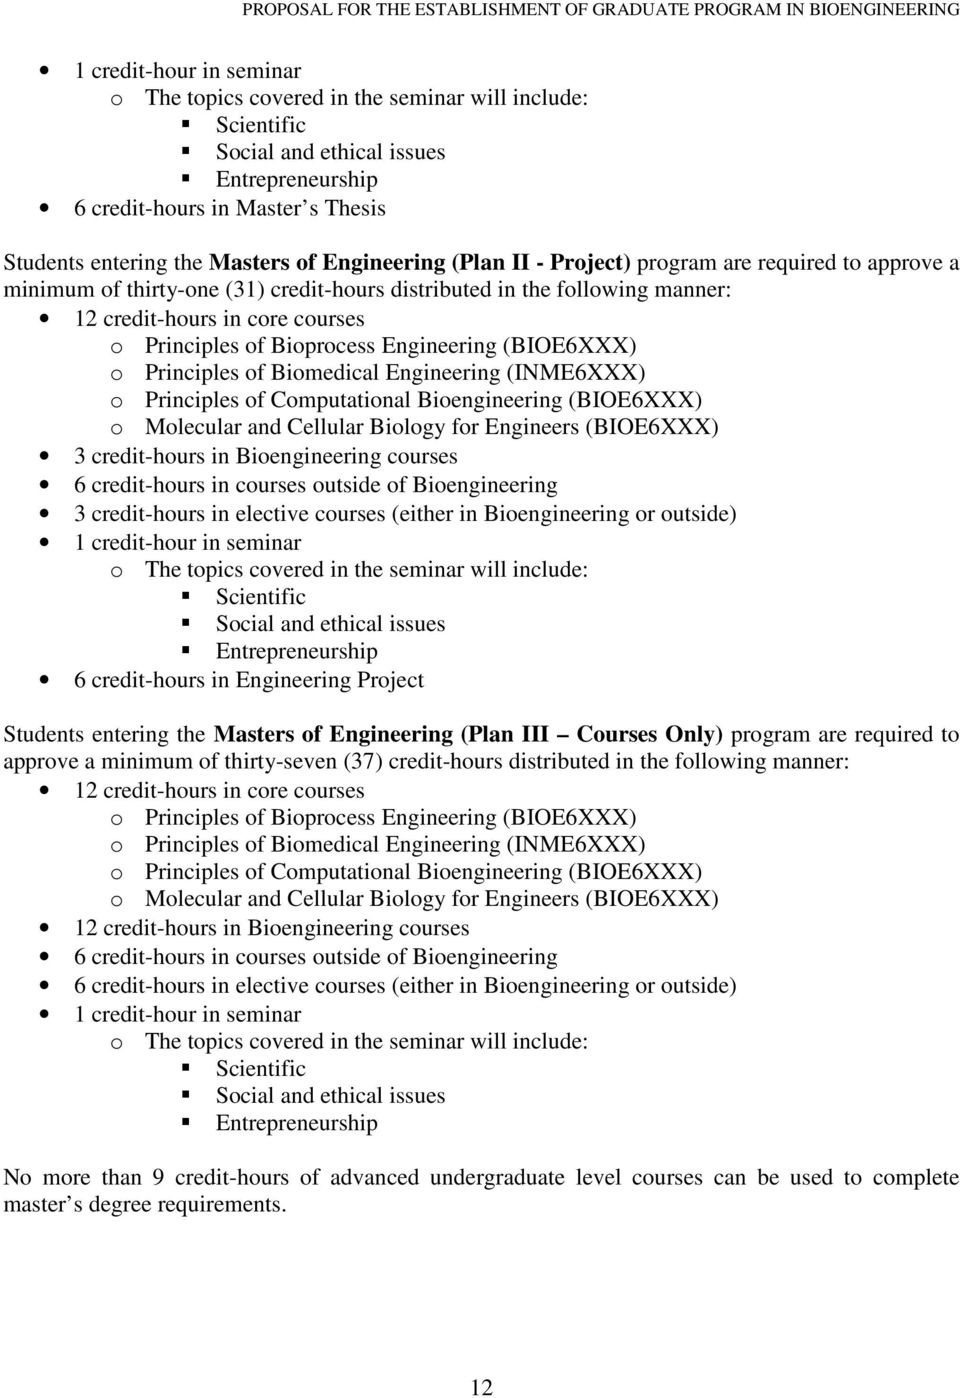 Bioprocess Engineering (BIOE6XXX) o Principles of Biomedical Engineering (INME6XXX) o Principles of Computational Bioengineering (BIOE6XXX) o Molecular and Cellular Biology for Engineers (BIOE6XXX) 3